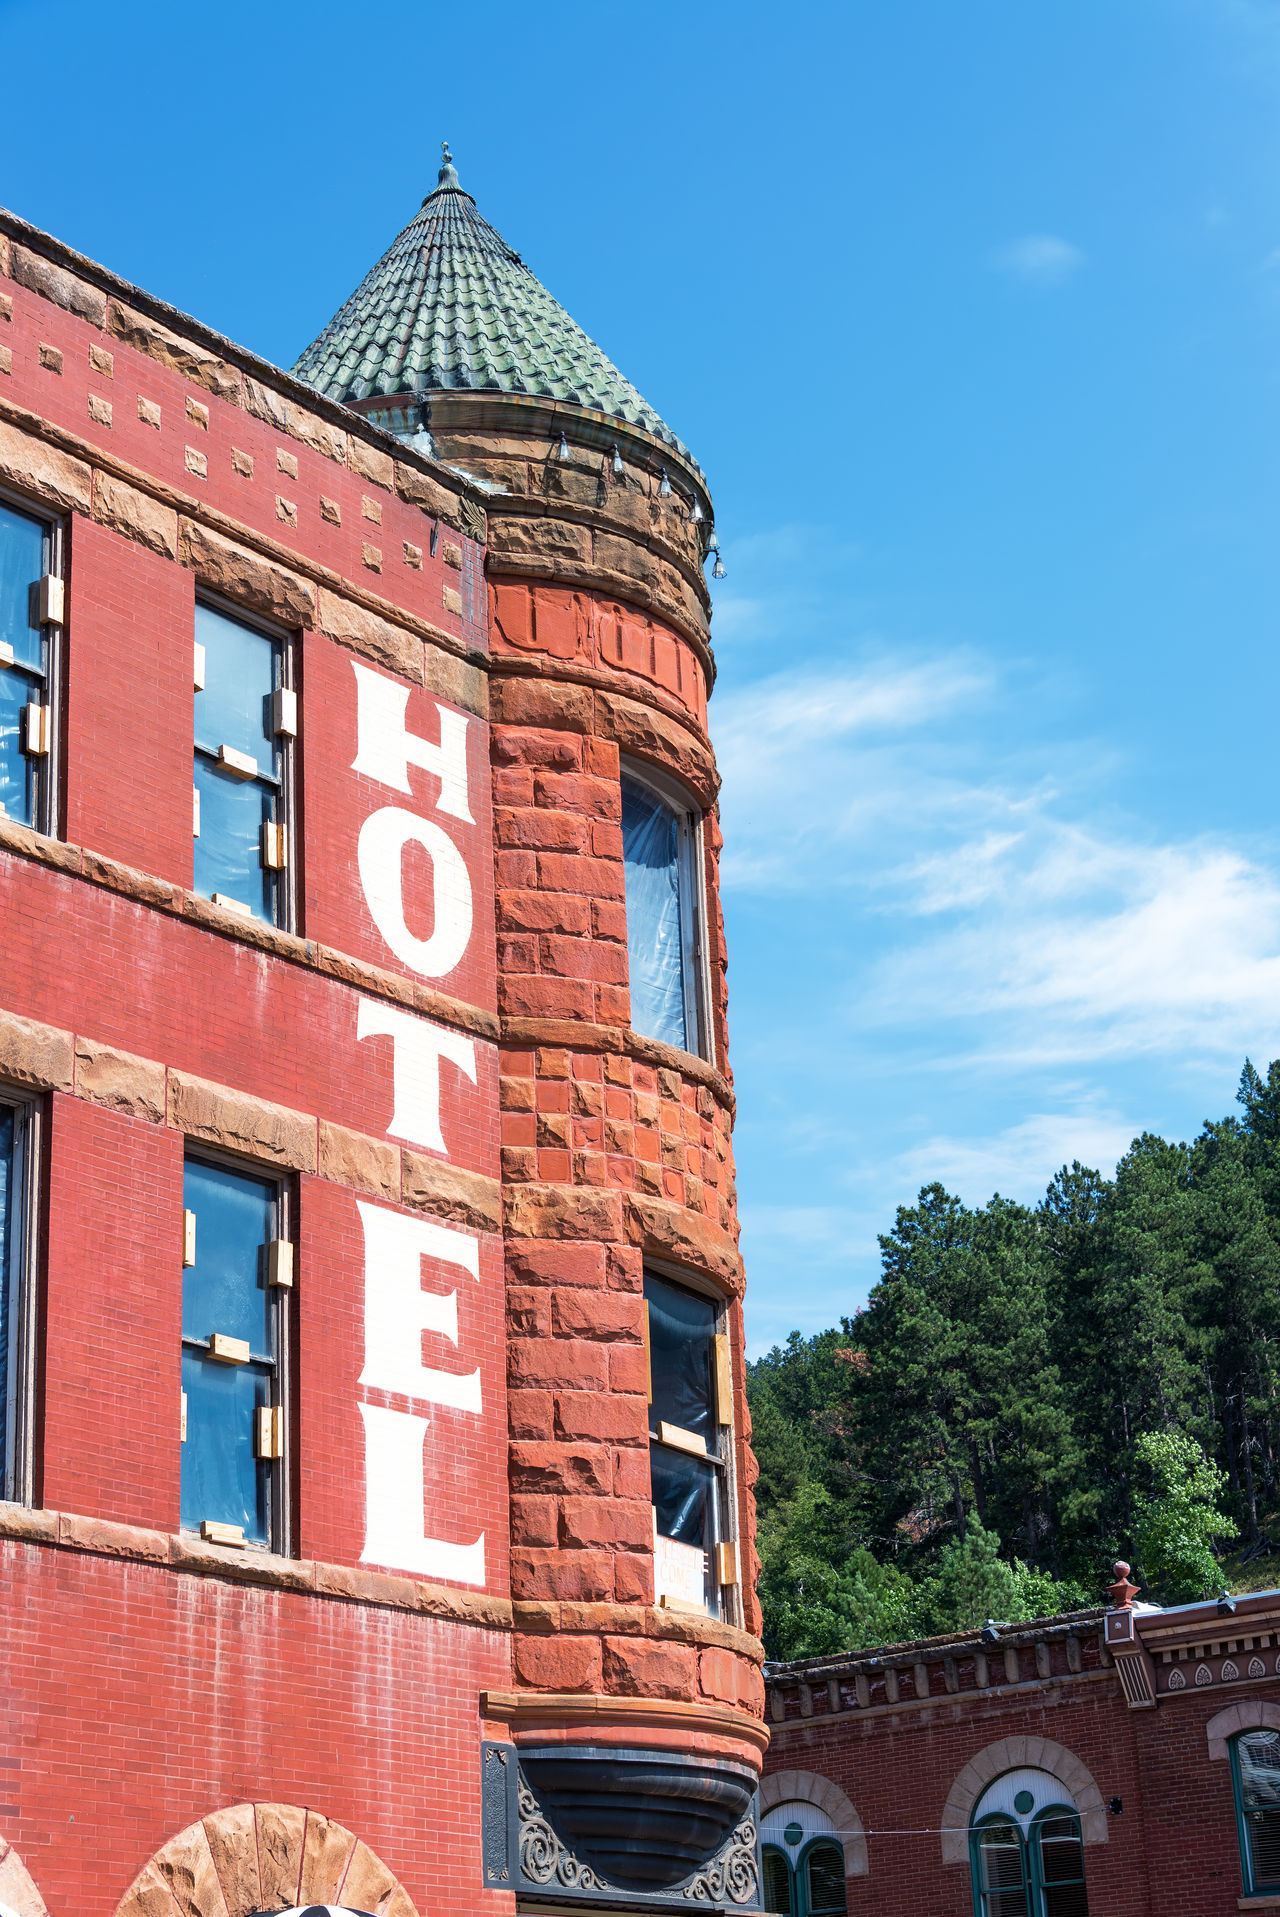 View of historic hotel in the old west town of Deadwood, South Dakota Architecture Architecture Bar Black Hills Brick Building Exterior Casino Deadwood  Downtown Historic Hotel No People Old West  Restaurant Sky South Dakota Tavern  Tourism Tourists Town Travel Travel Destinations USA Western Wild West